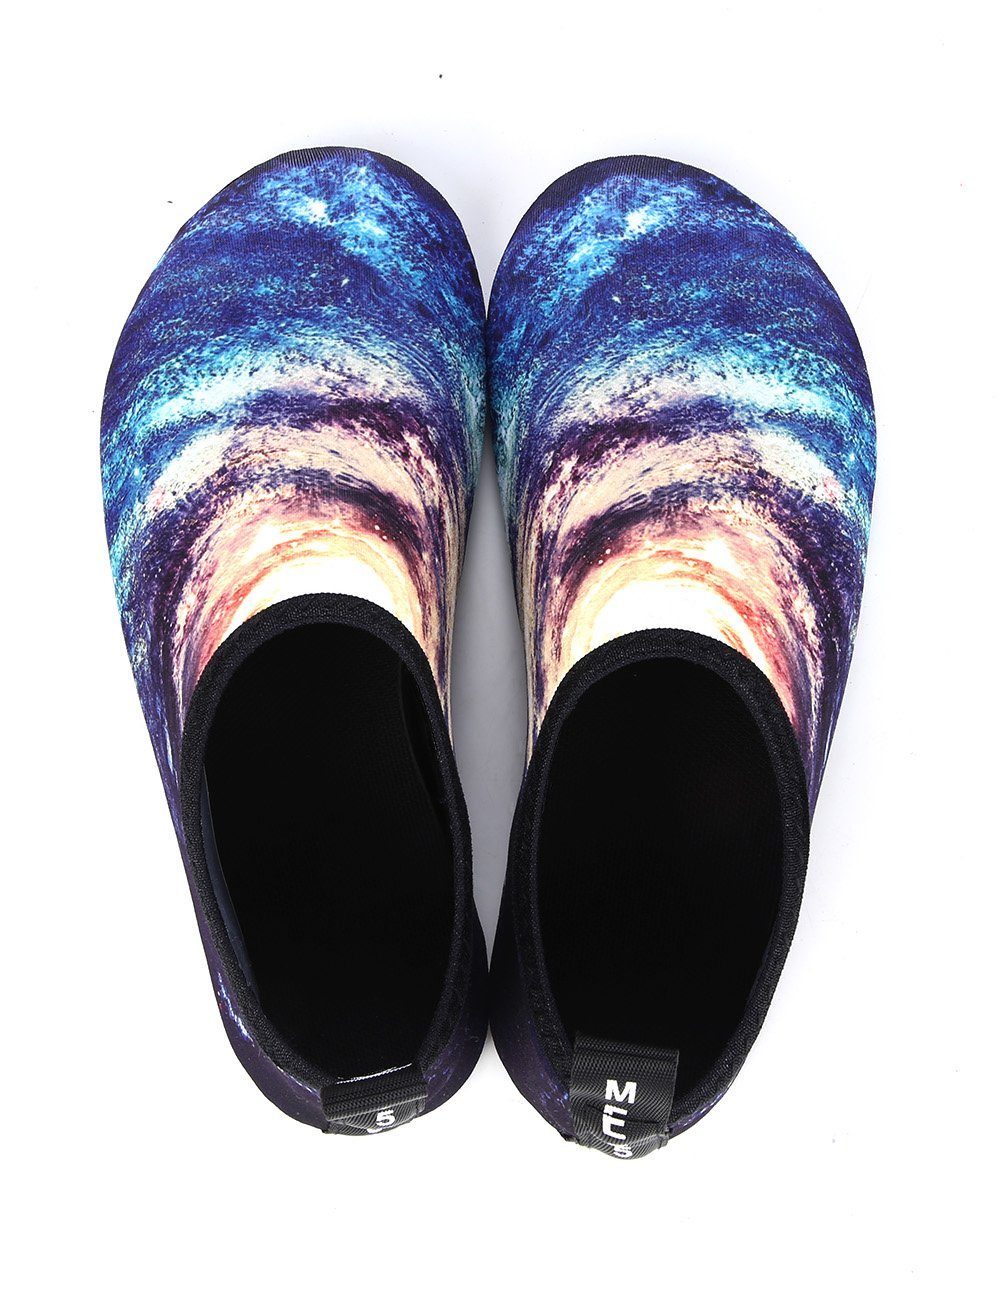 MANYITE Water Sports Shoes Summer Beach Swim Yoga Quick Dry Relaxed Comfortable for Men Women (US Women5.5-6.5M/Men 5-5.5M, Starry-Galaxy)